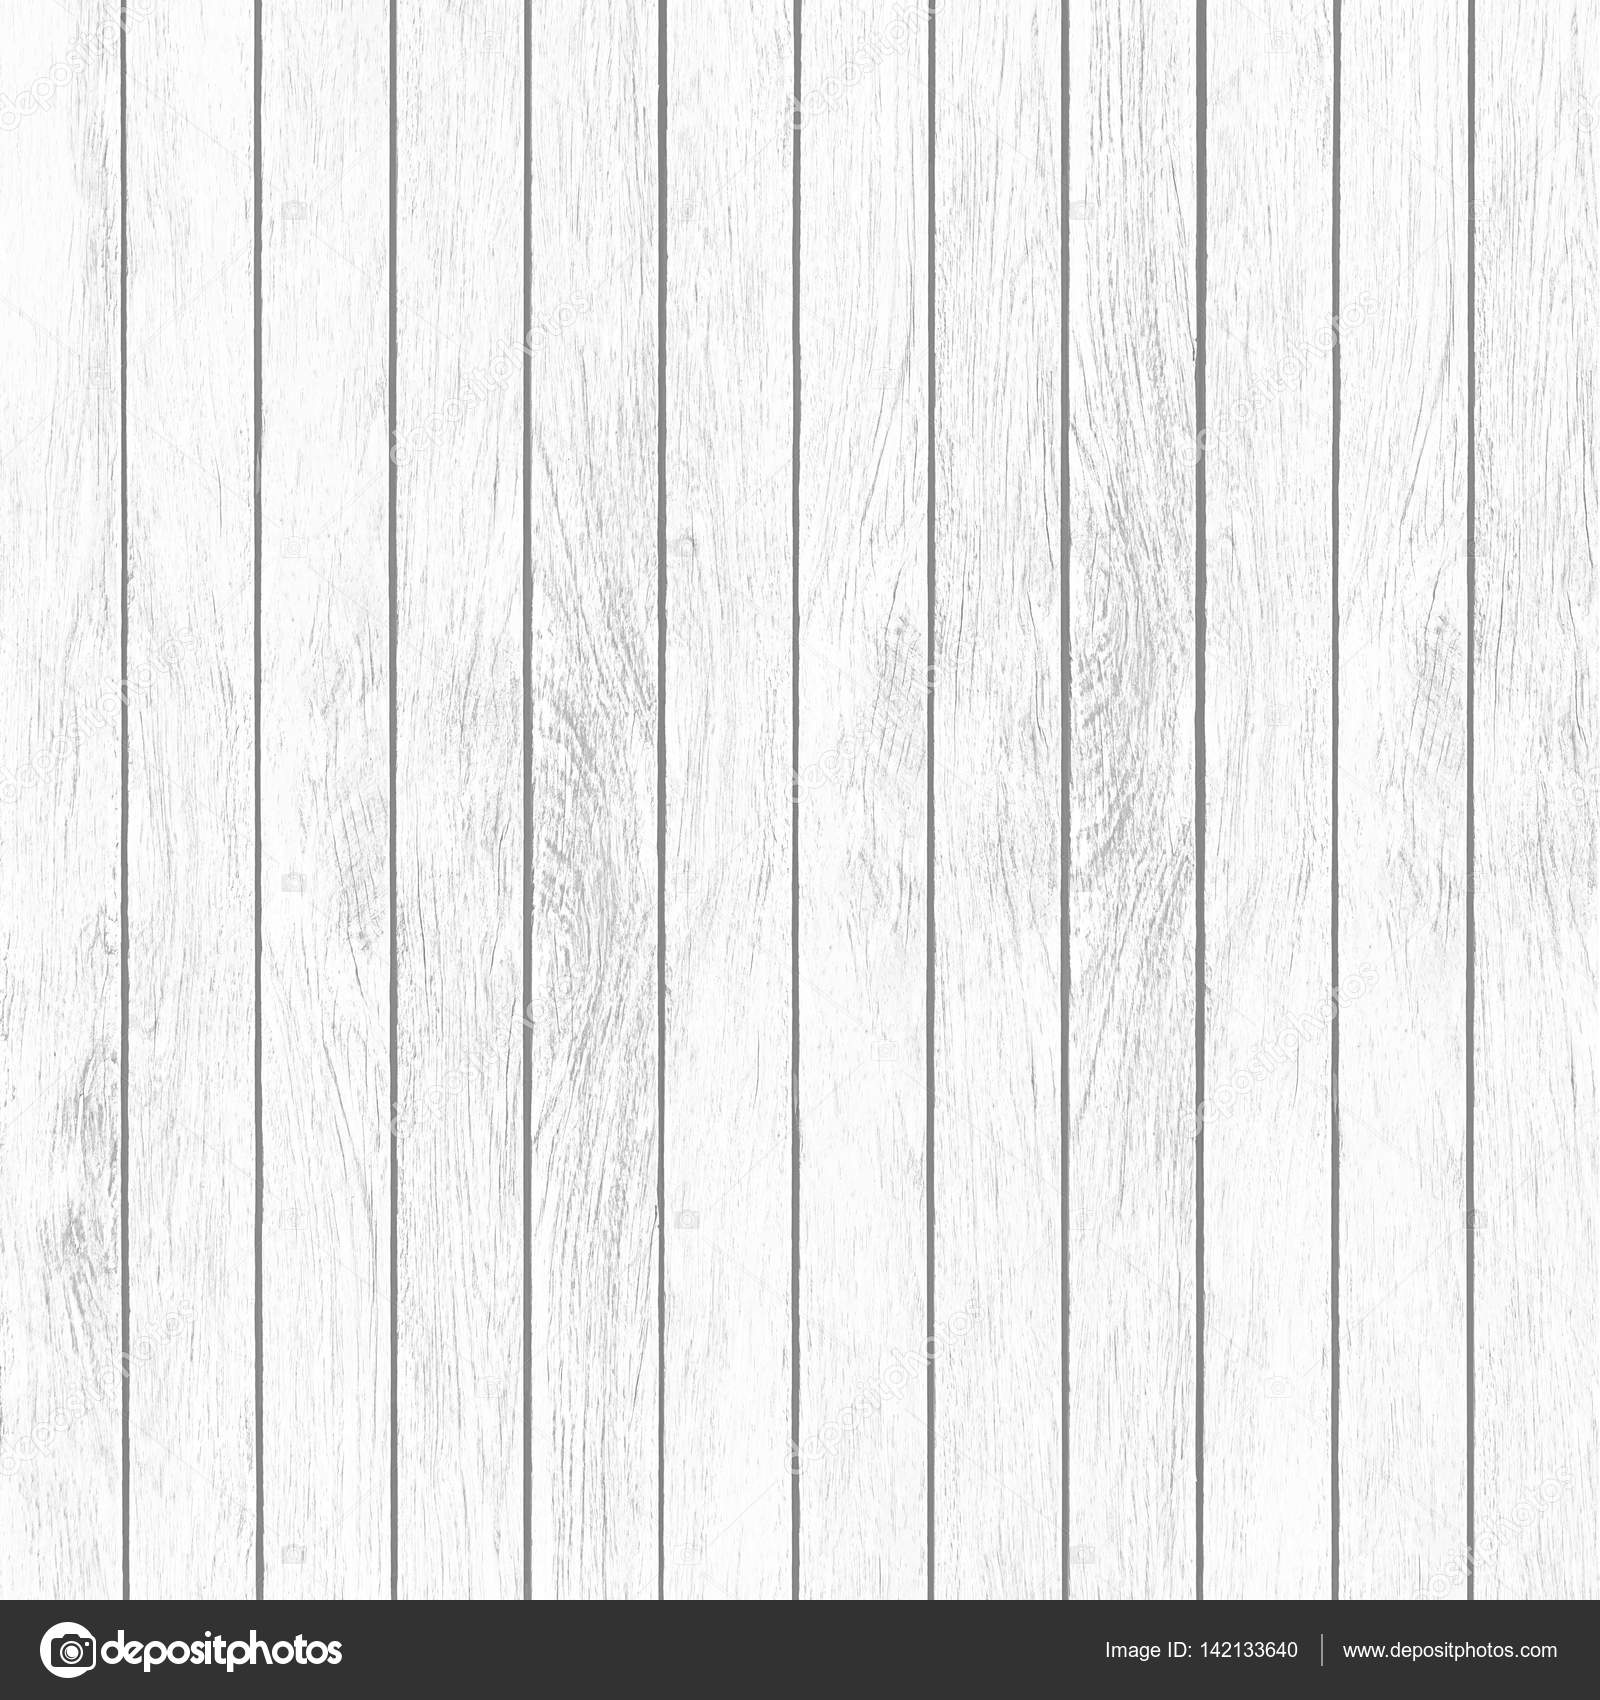 Charmant White Wood Plank Texture For Background U2014 Stock Photo